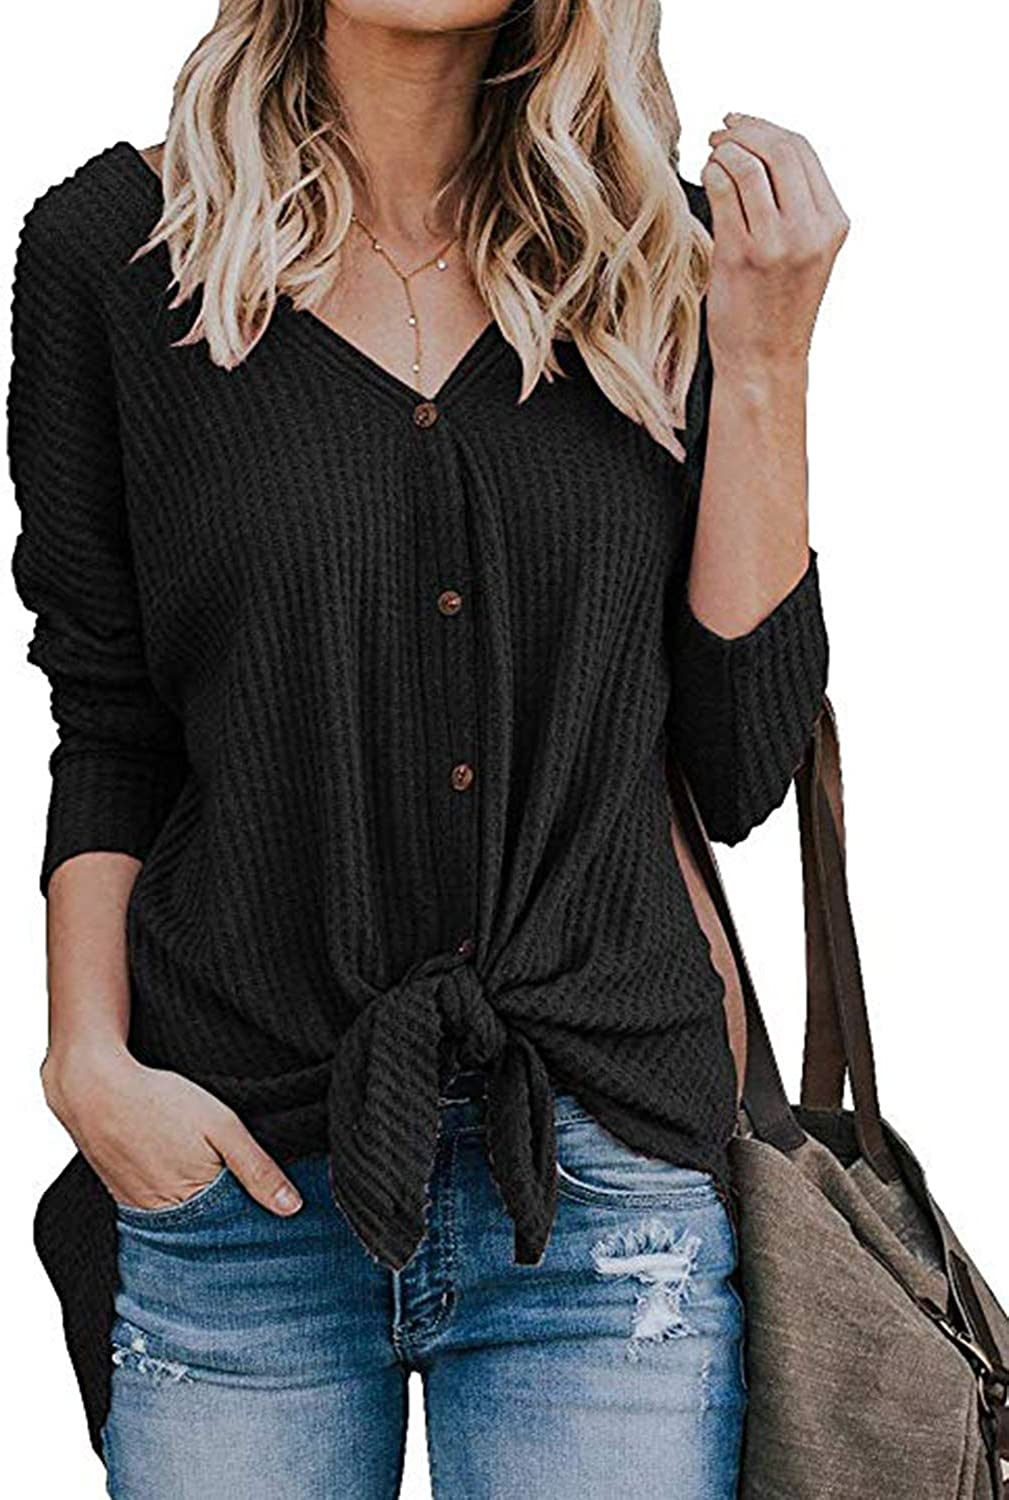 ChainJoy Women's Long Sleeve Round Neck Casual Tie Knot Front Blouse TShirt Tops